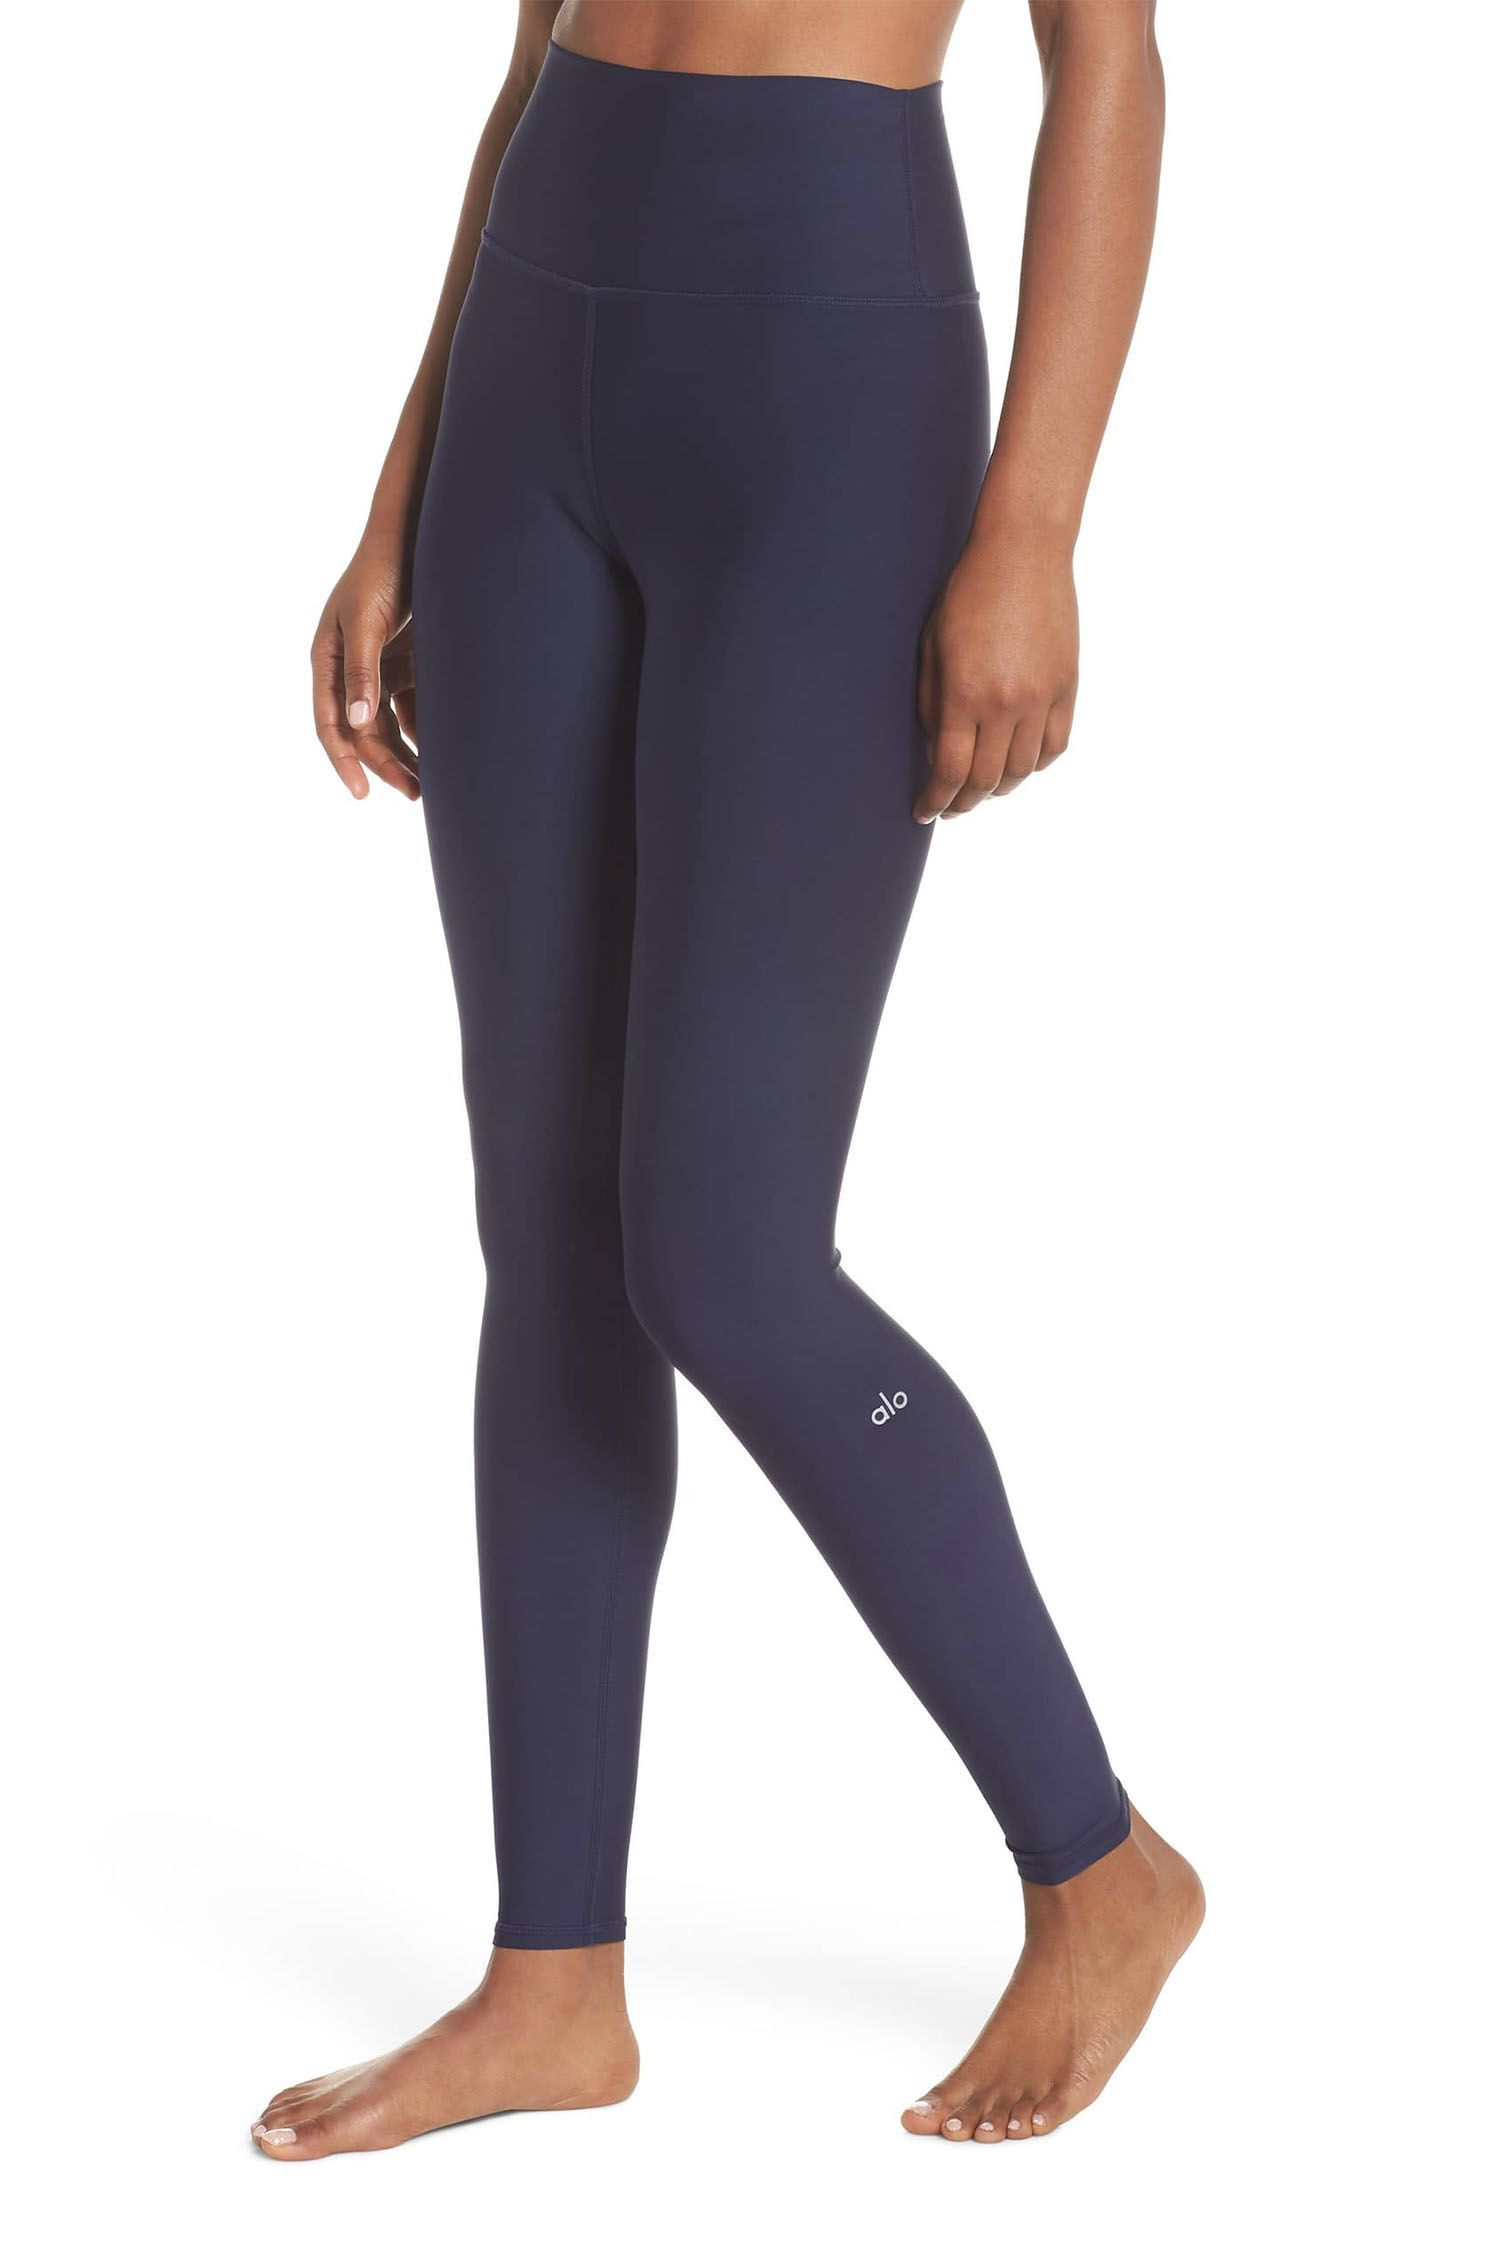 8d211505370756 The 7 Best High-Waisted Leggings for Every Workout